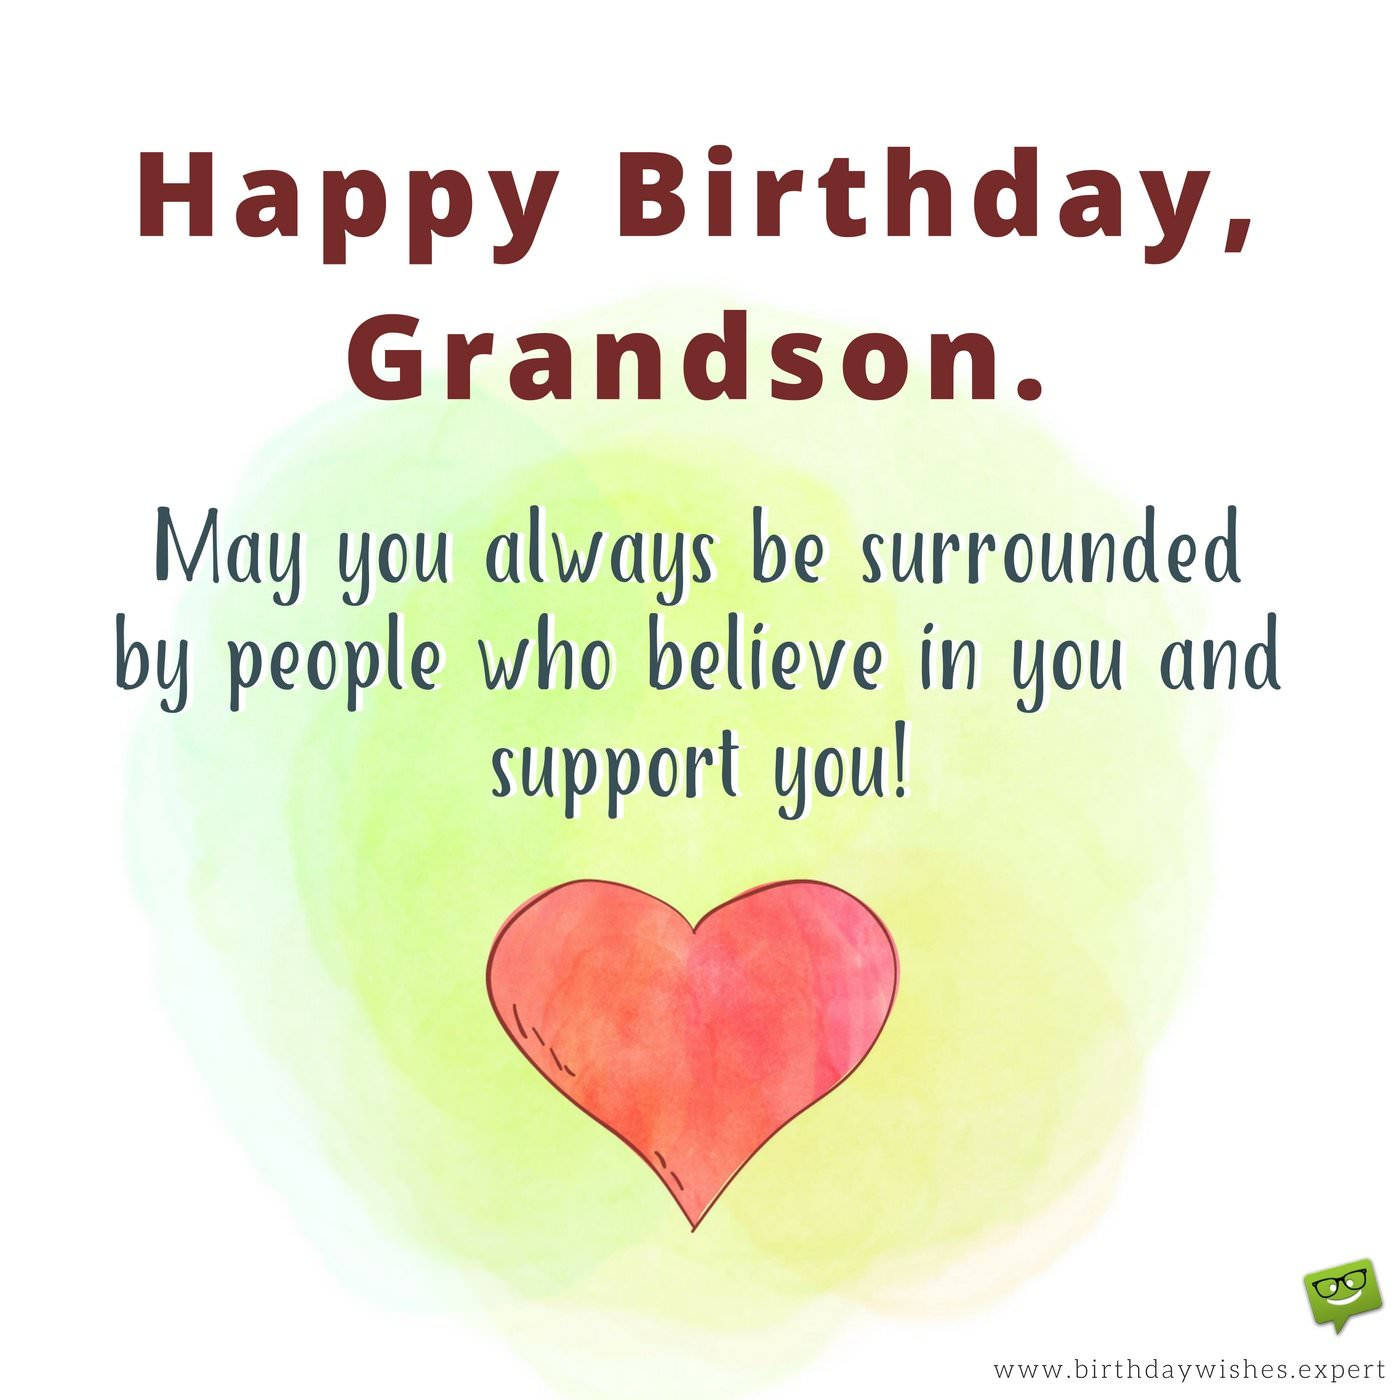 Best ideas about Happy Birthday Grandson Quotes . Save or Pin From your Grandma & Grandpa Birthday Wishes for my Grandson Now.